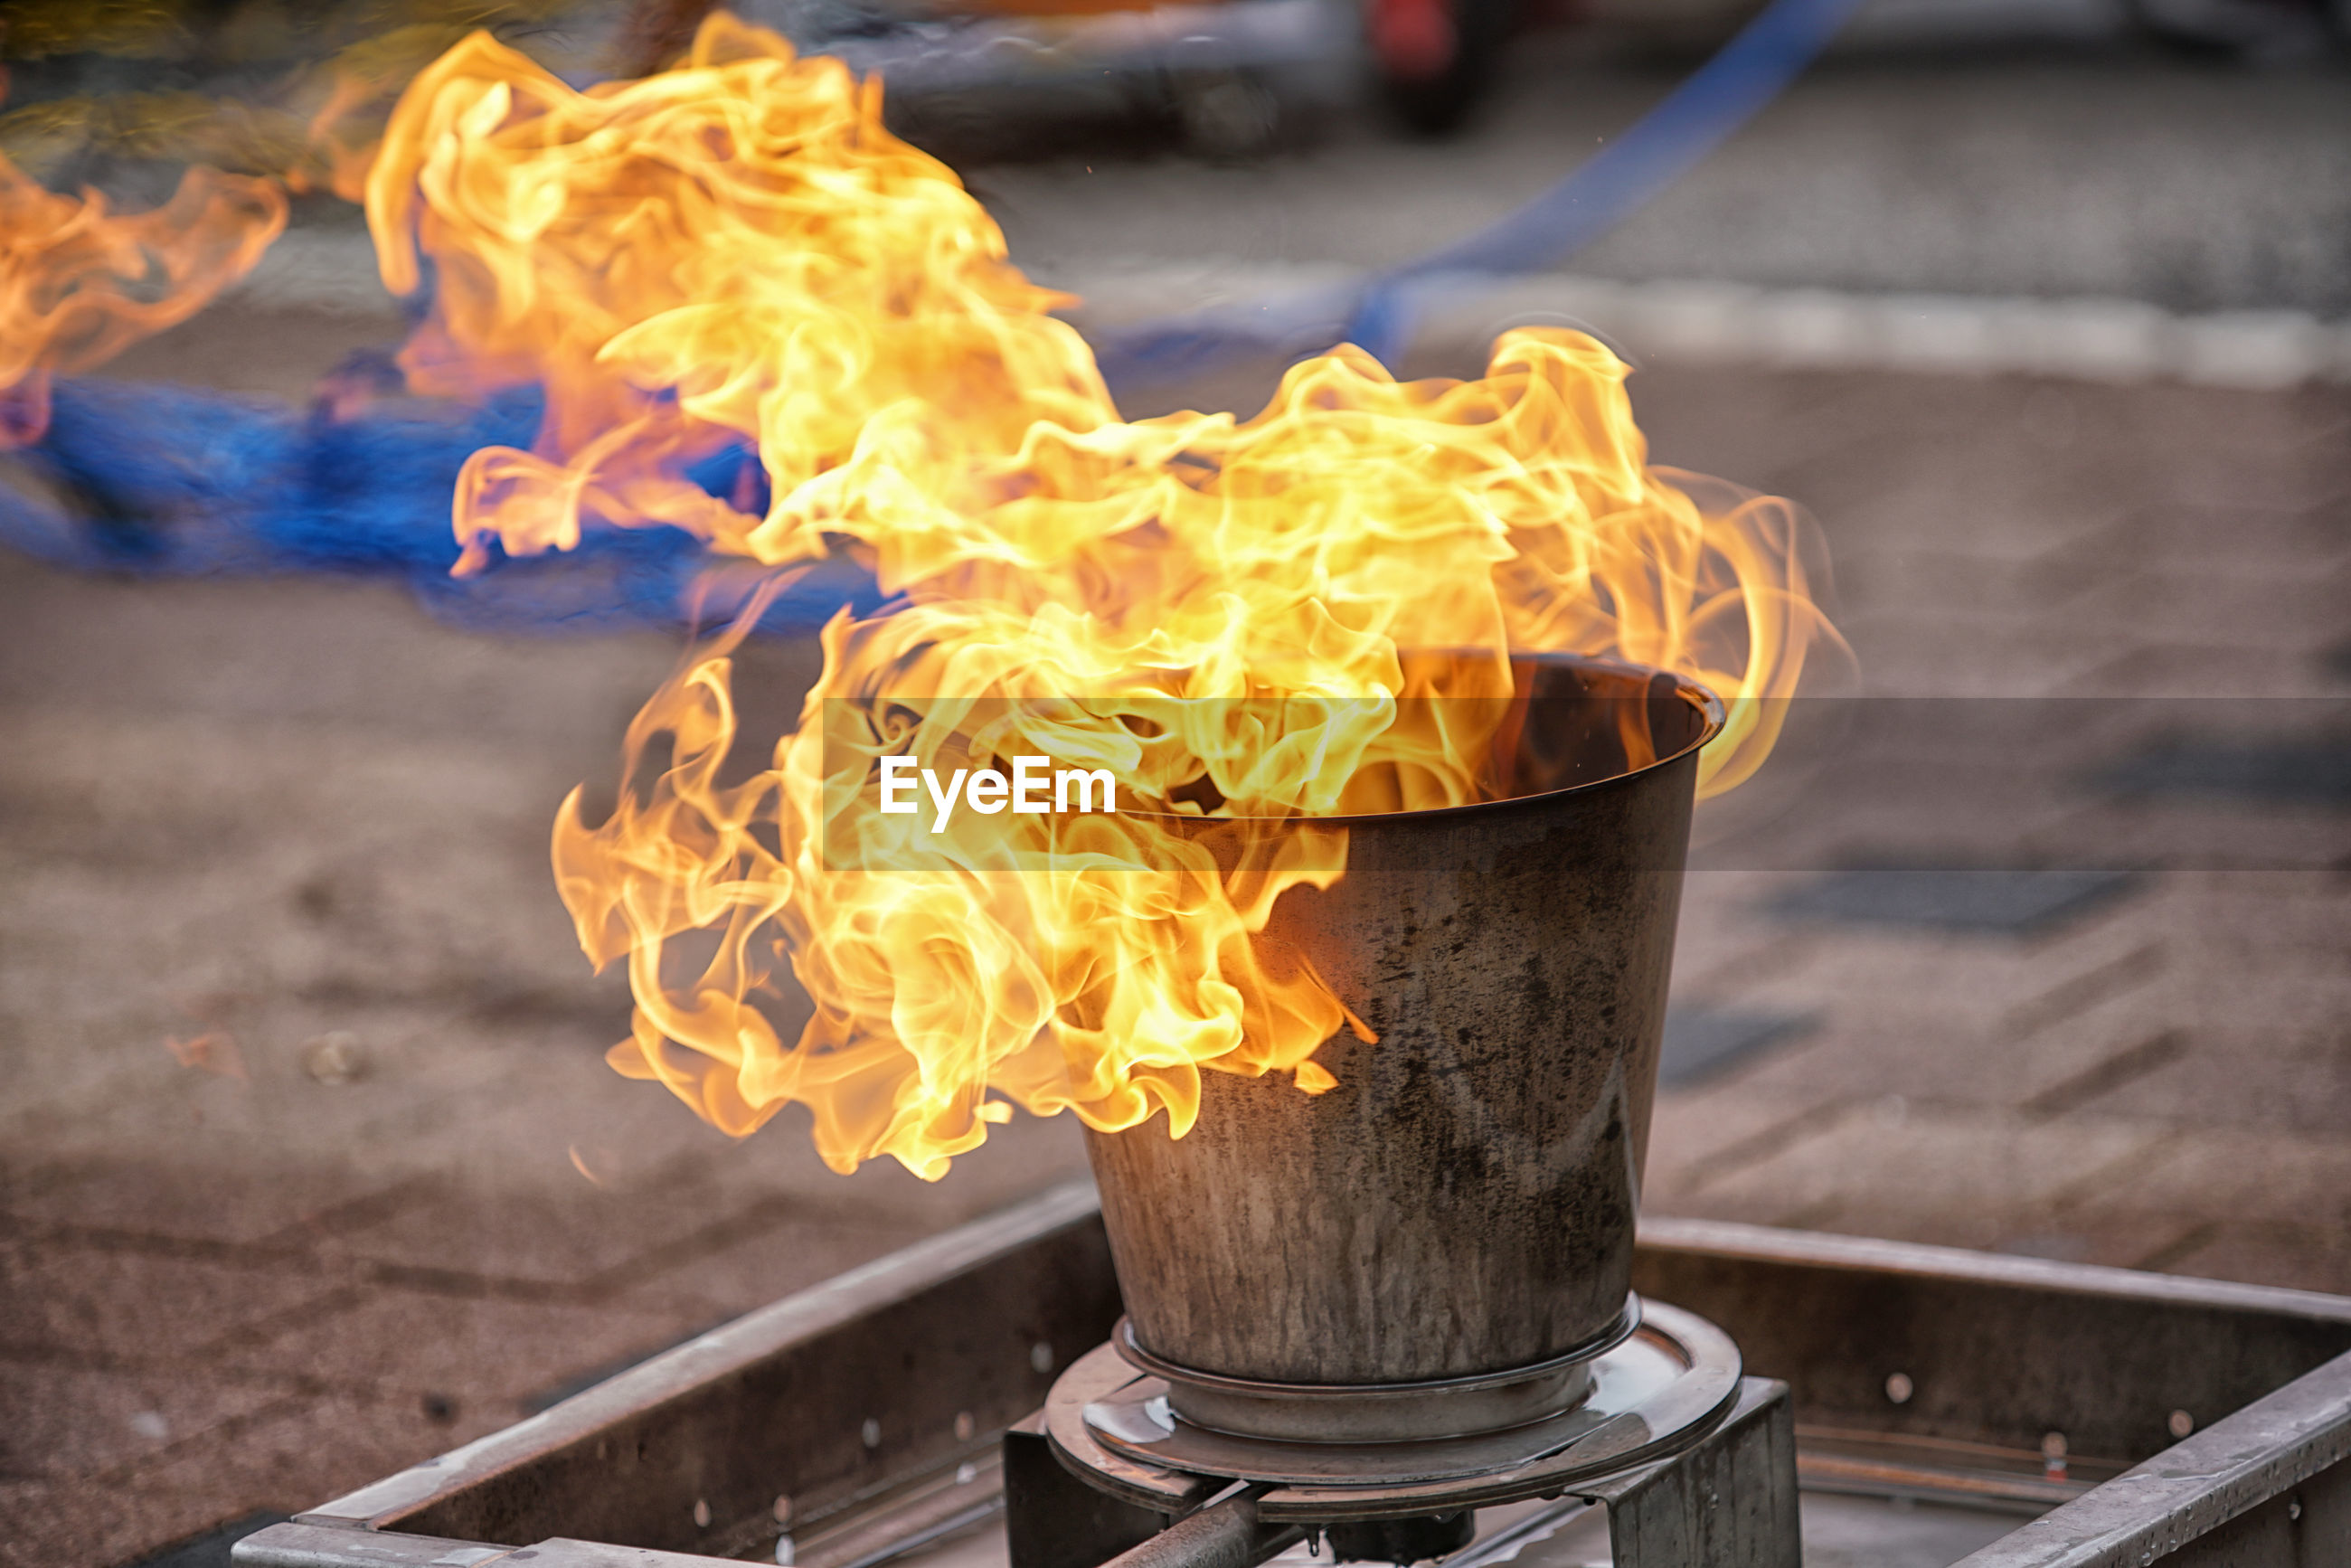 CLOSE-UP OF FIRE BURNING ON METAL